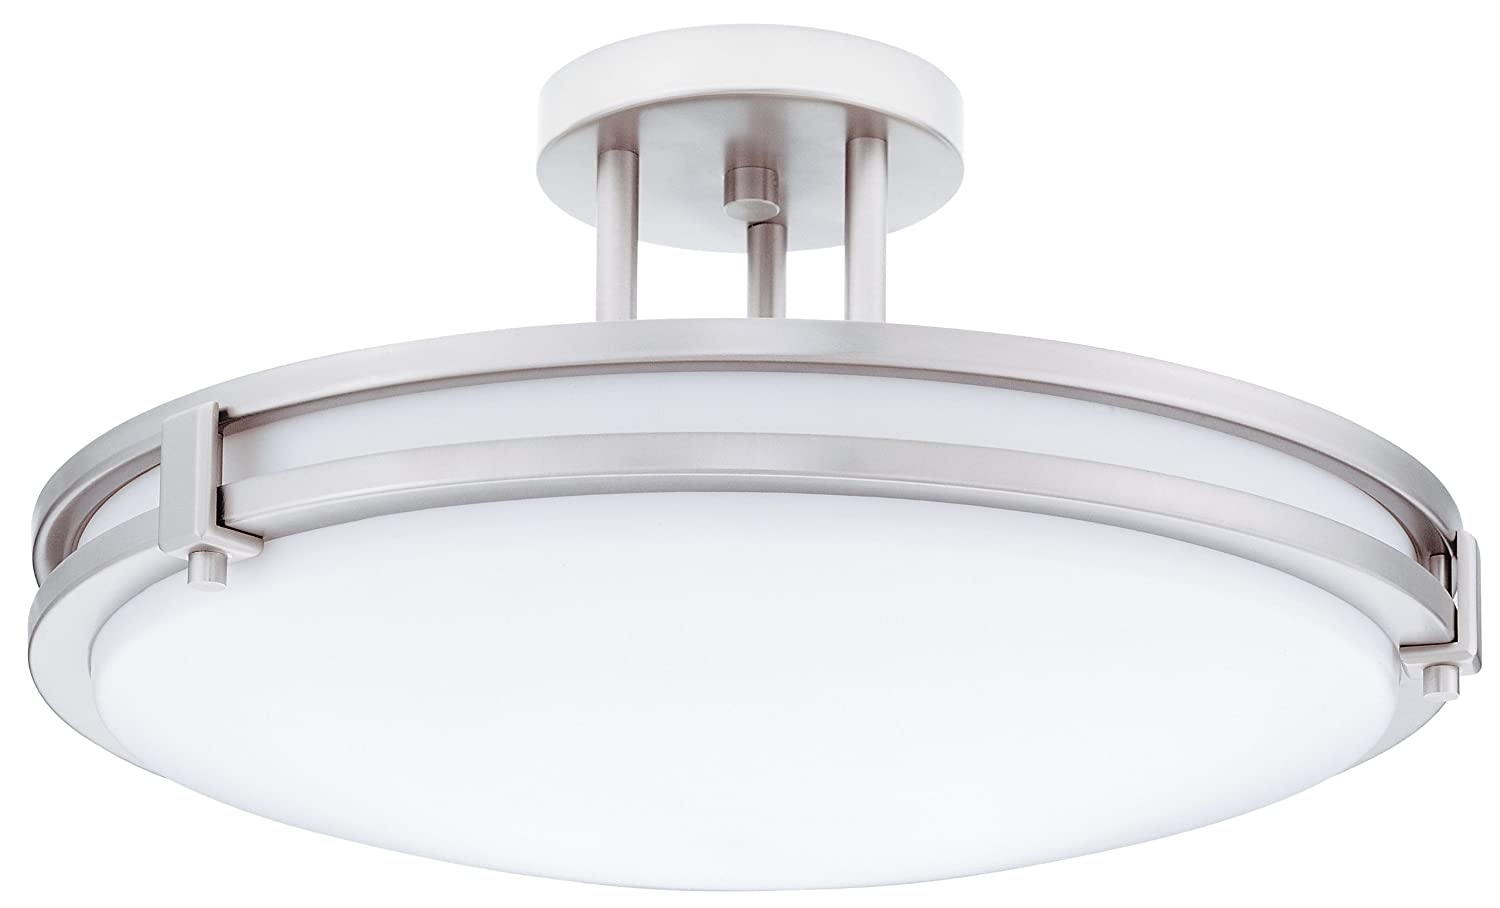 Amazon lithonia lighting 11752 bn m4 saturn round 2 light amazon lithonia lighting 11752 bn m4 saturn round 2 light energy star 16 inch semi flush light brushed nickel home improvement arubaitofo Image collections